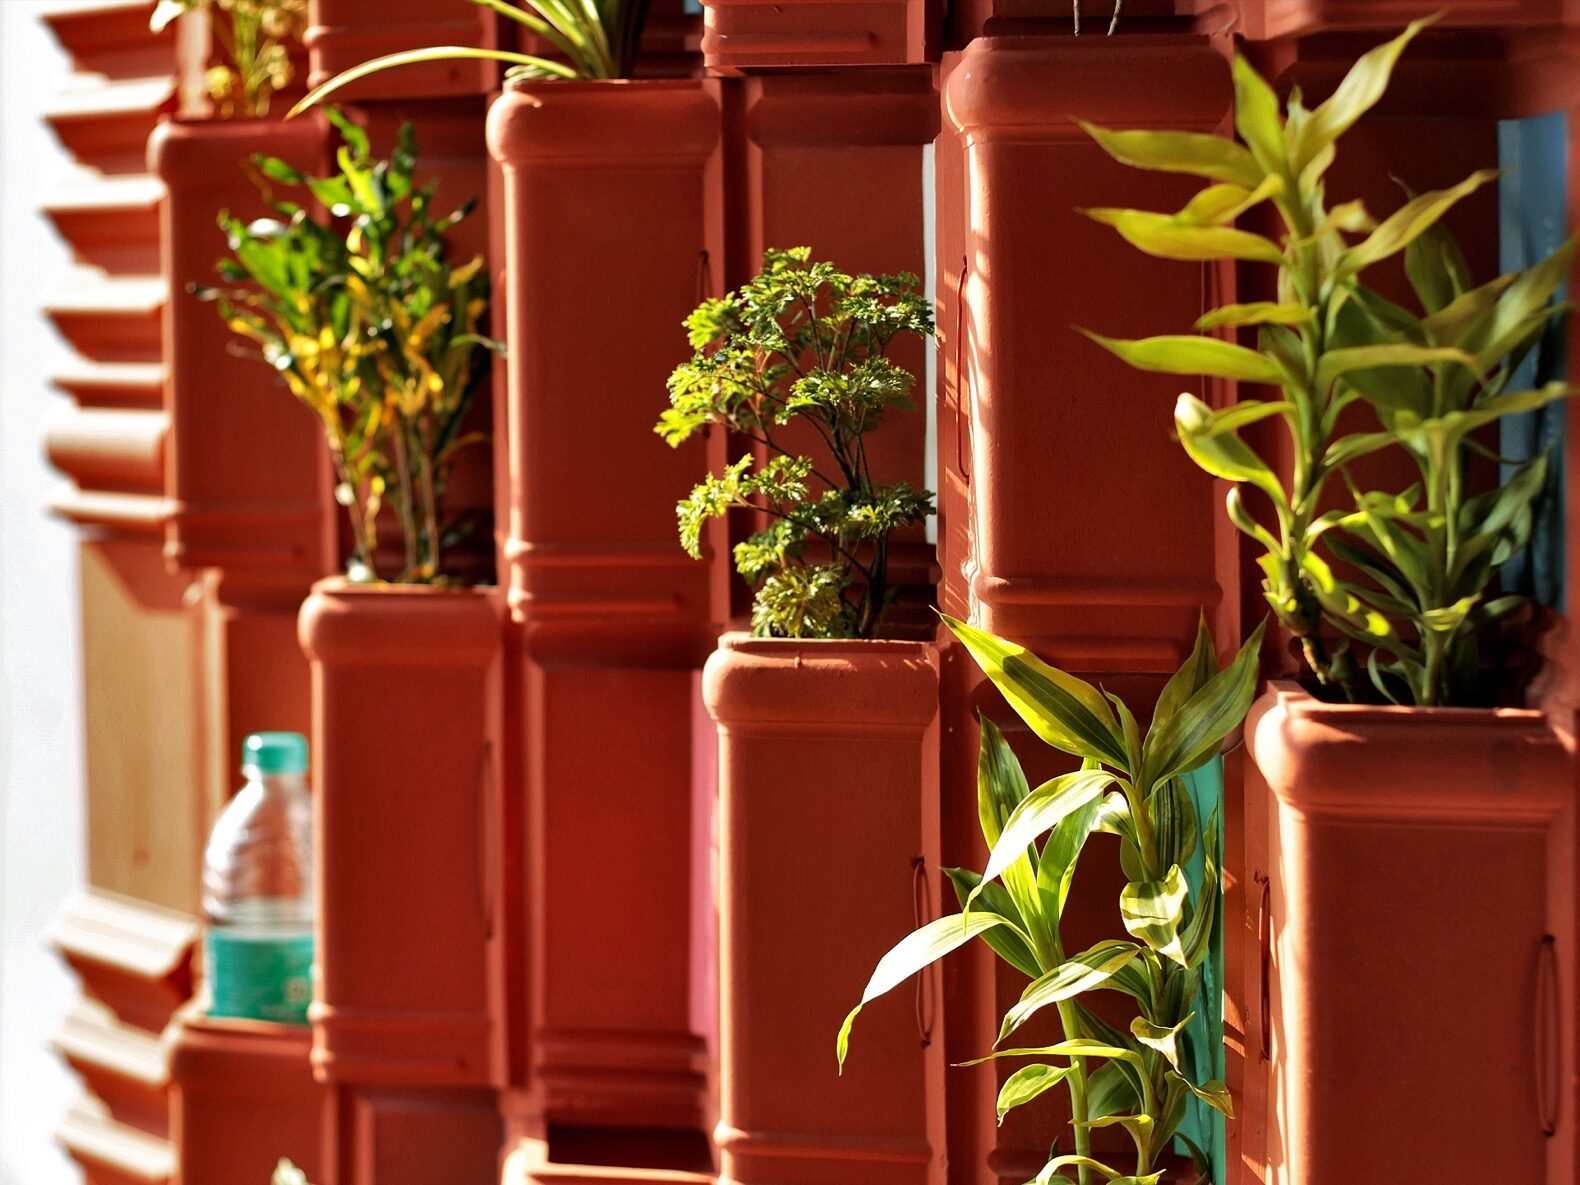 close-up of plants inside clay pots on a vertical garden